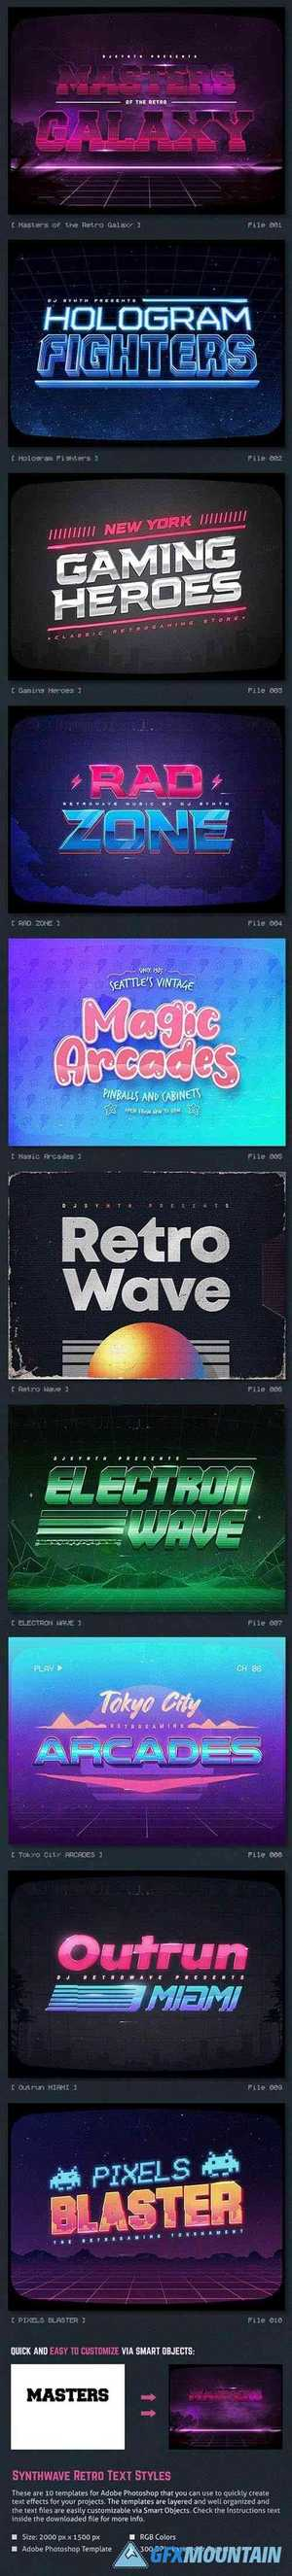 Synthwave 80s Retro Text Effects V3 26742705